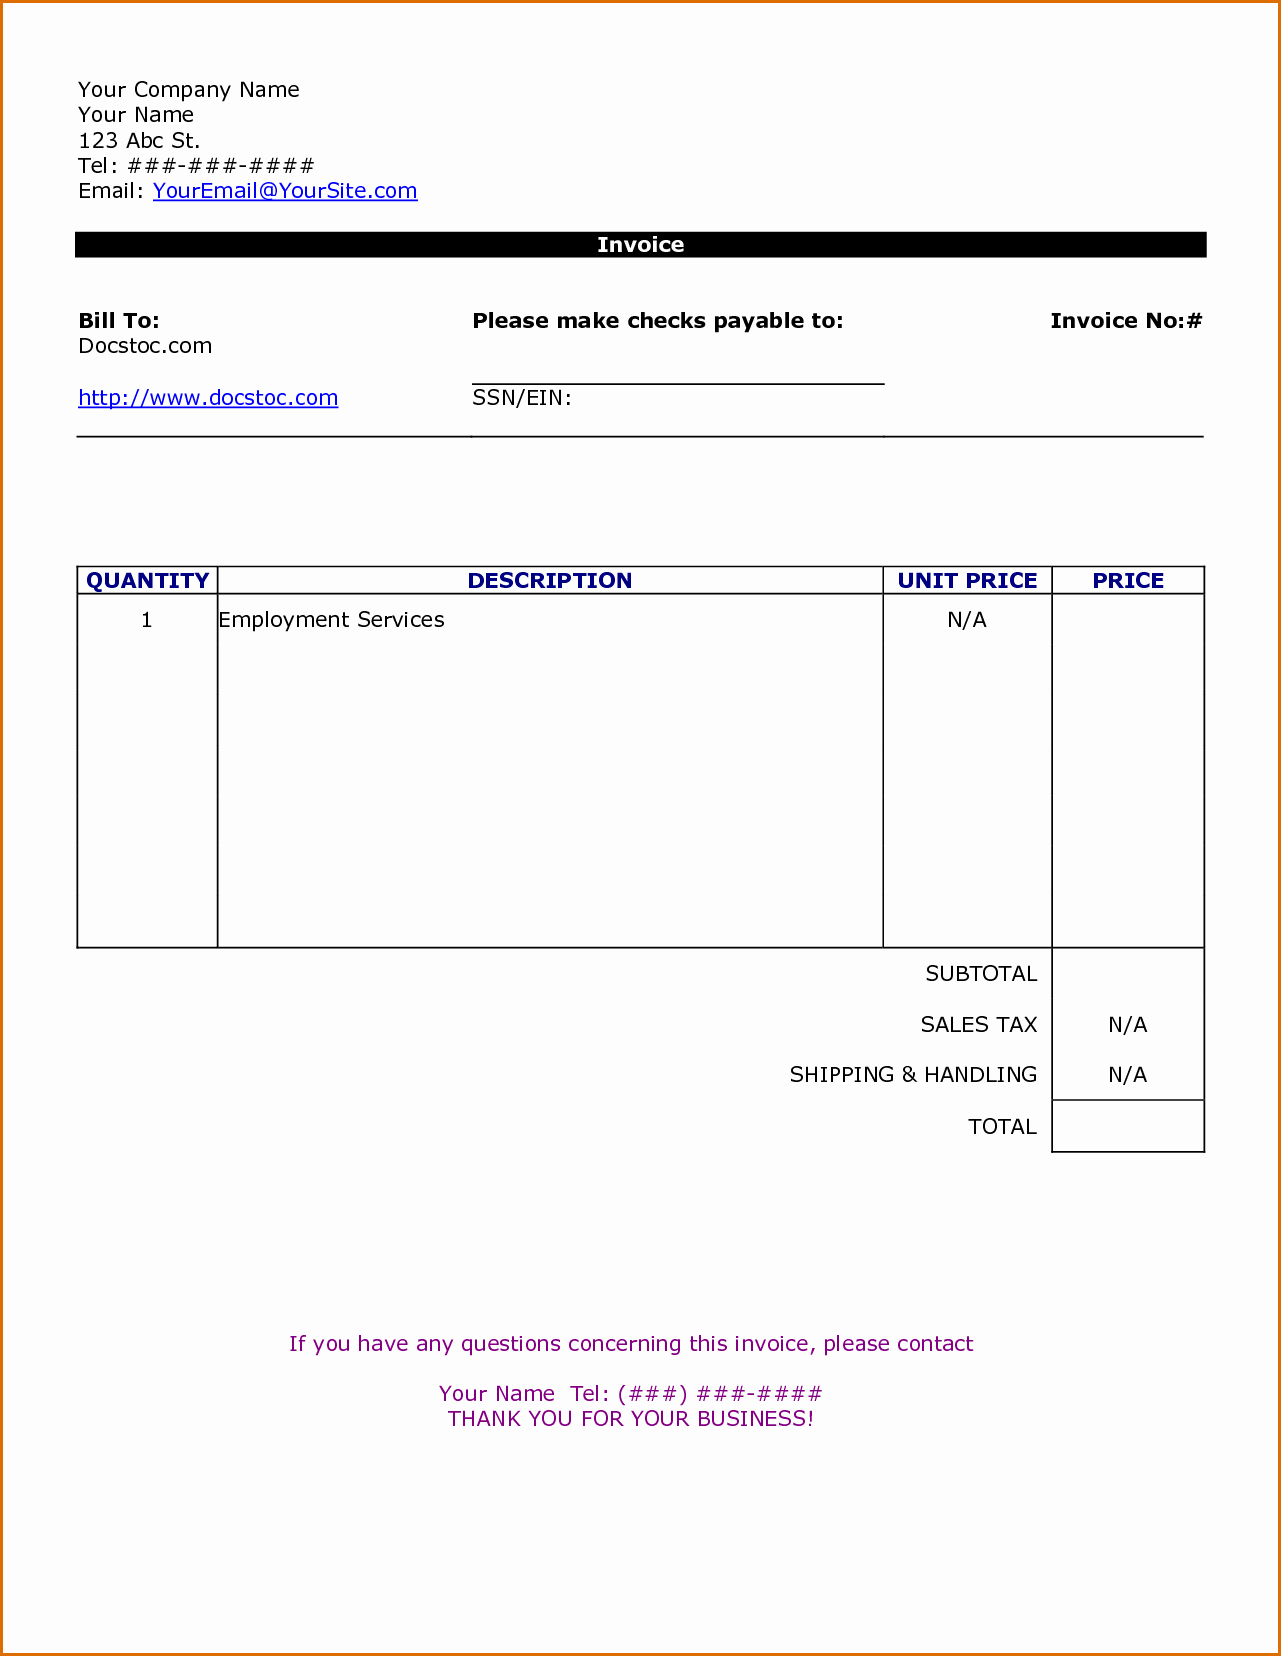 Independent Contractor Invoice Template Luxury 10 Independent Contractor Invoice Template